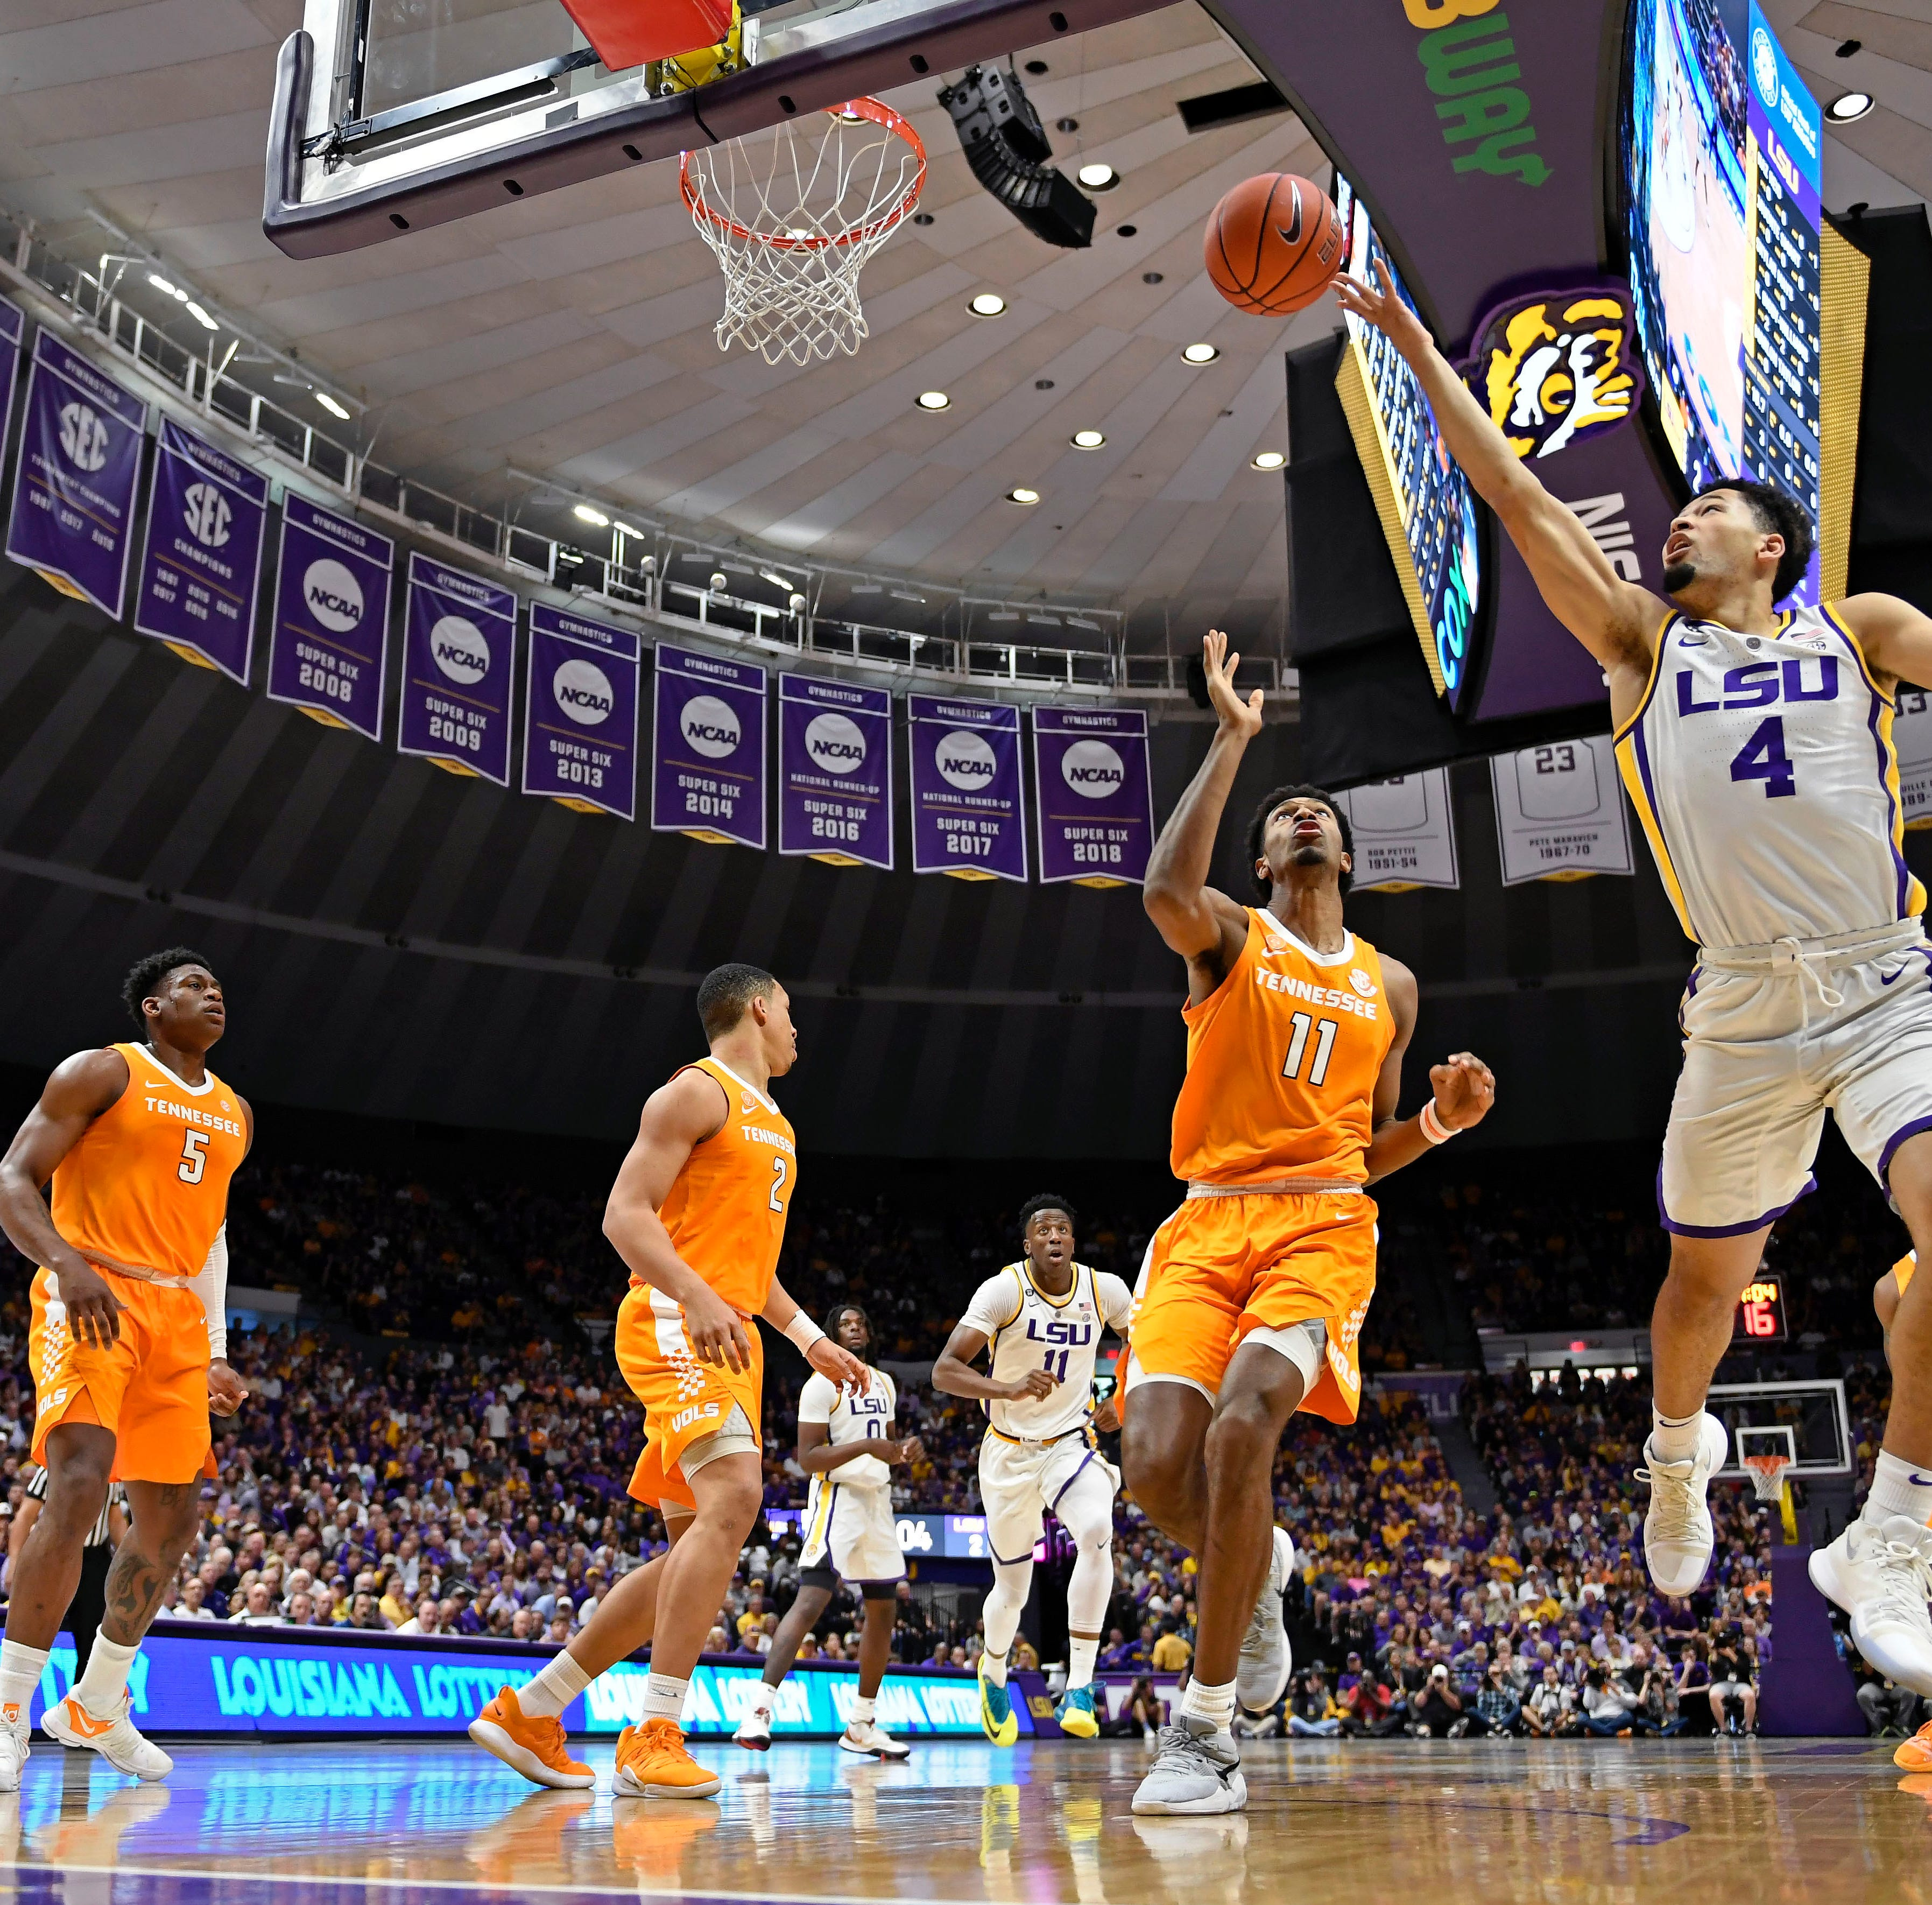 LSU vs. Tennessee Vols basketball: Social media reacts to the Tigers' overtime win